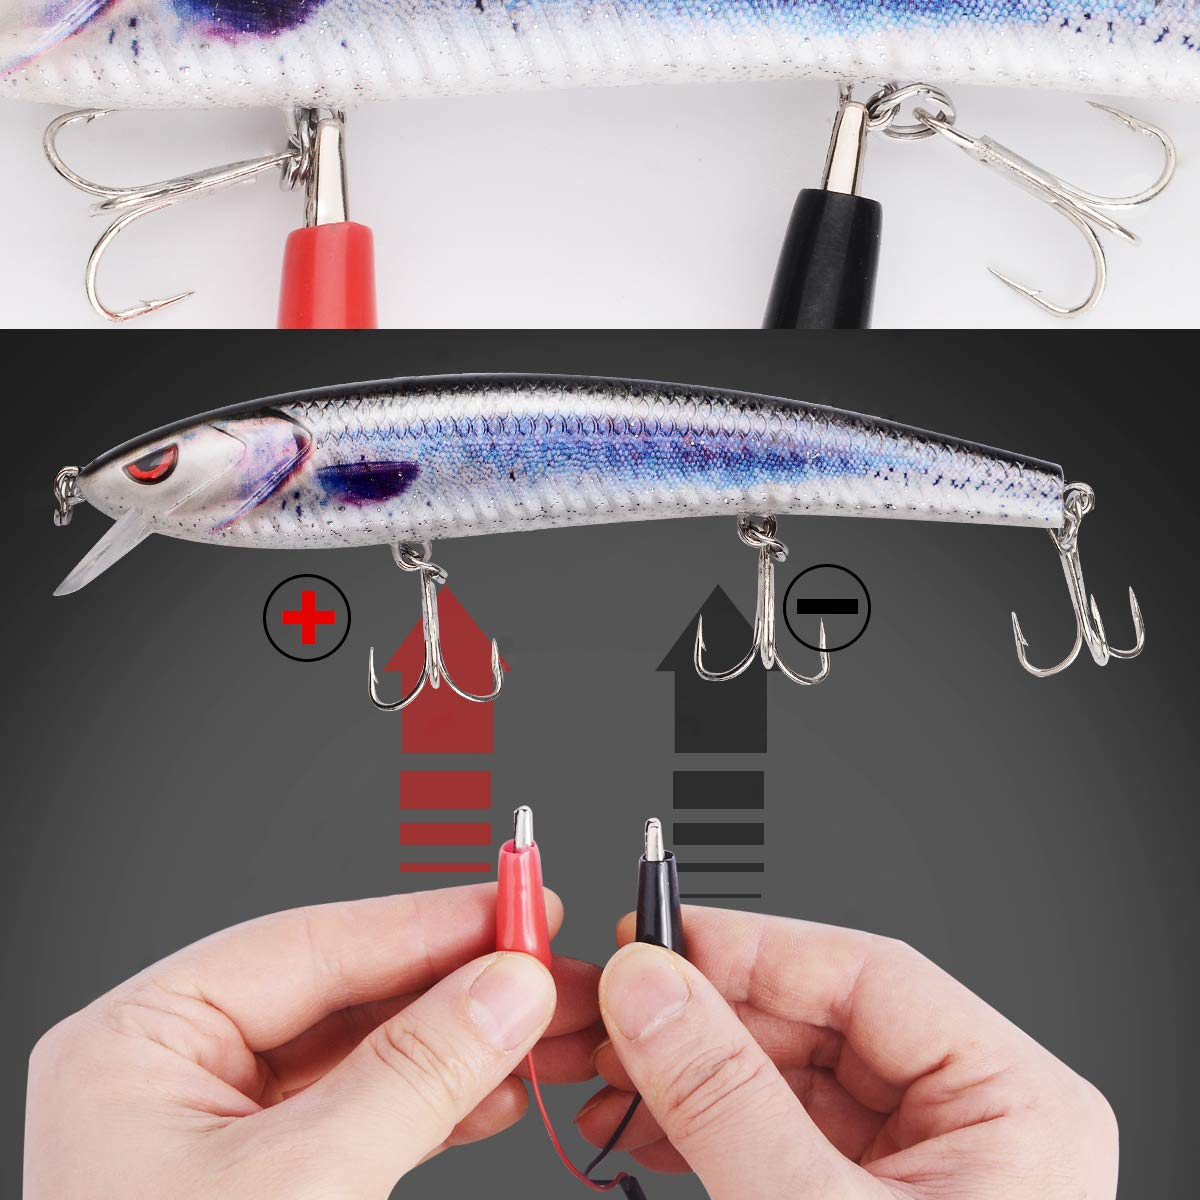 Bass and Trout Fishing Lures,Twitching Lures Rechargeable LED Slowing Sinking Baits with Mustad Hooks Freshwater and Saltwater,Minnow Jerkbait Crankbait